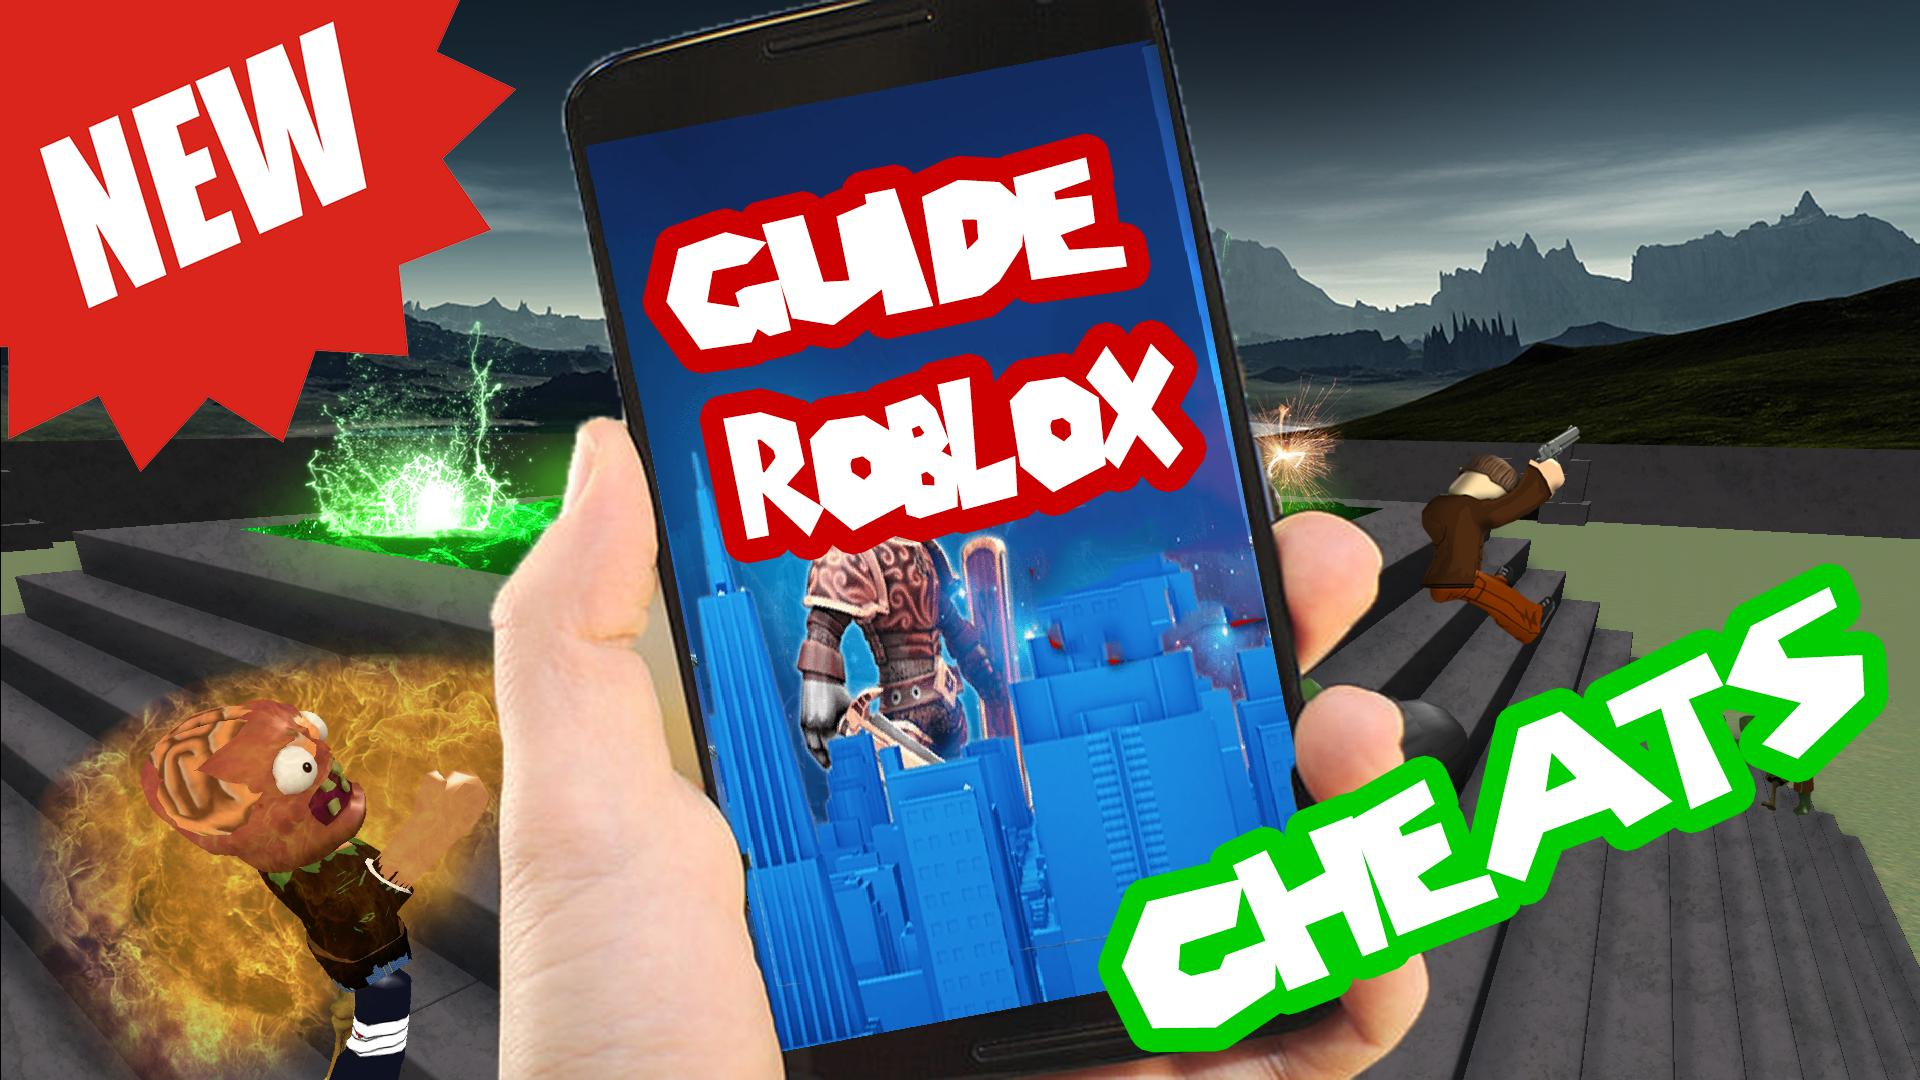 Guide Roblox And Cheat Robux For Android Apk Download